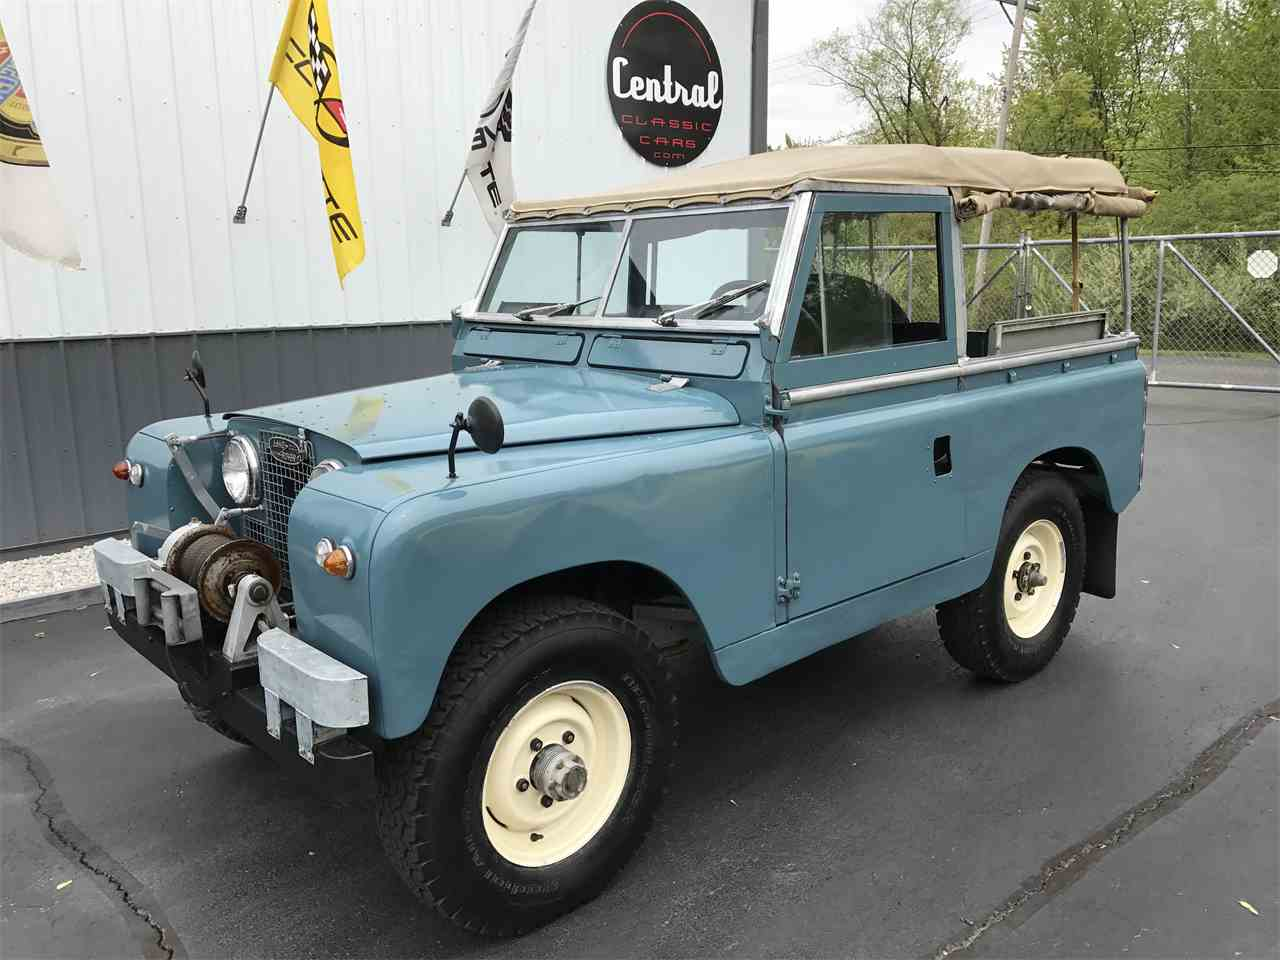 for rover ohio suv work of sv in two landrover is promo roadshow doors geneva range coupe art sale land with a news